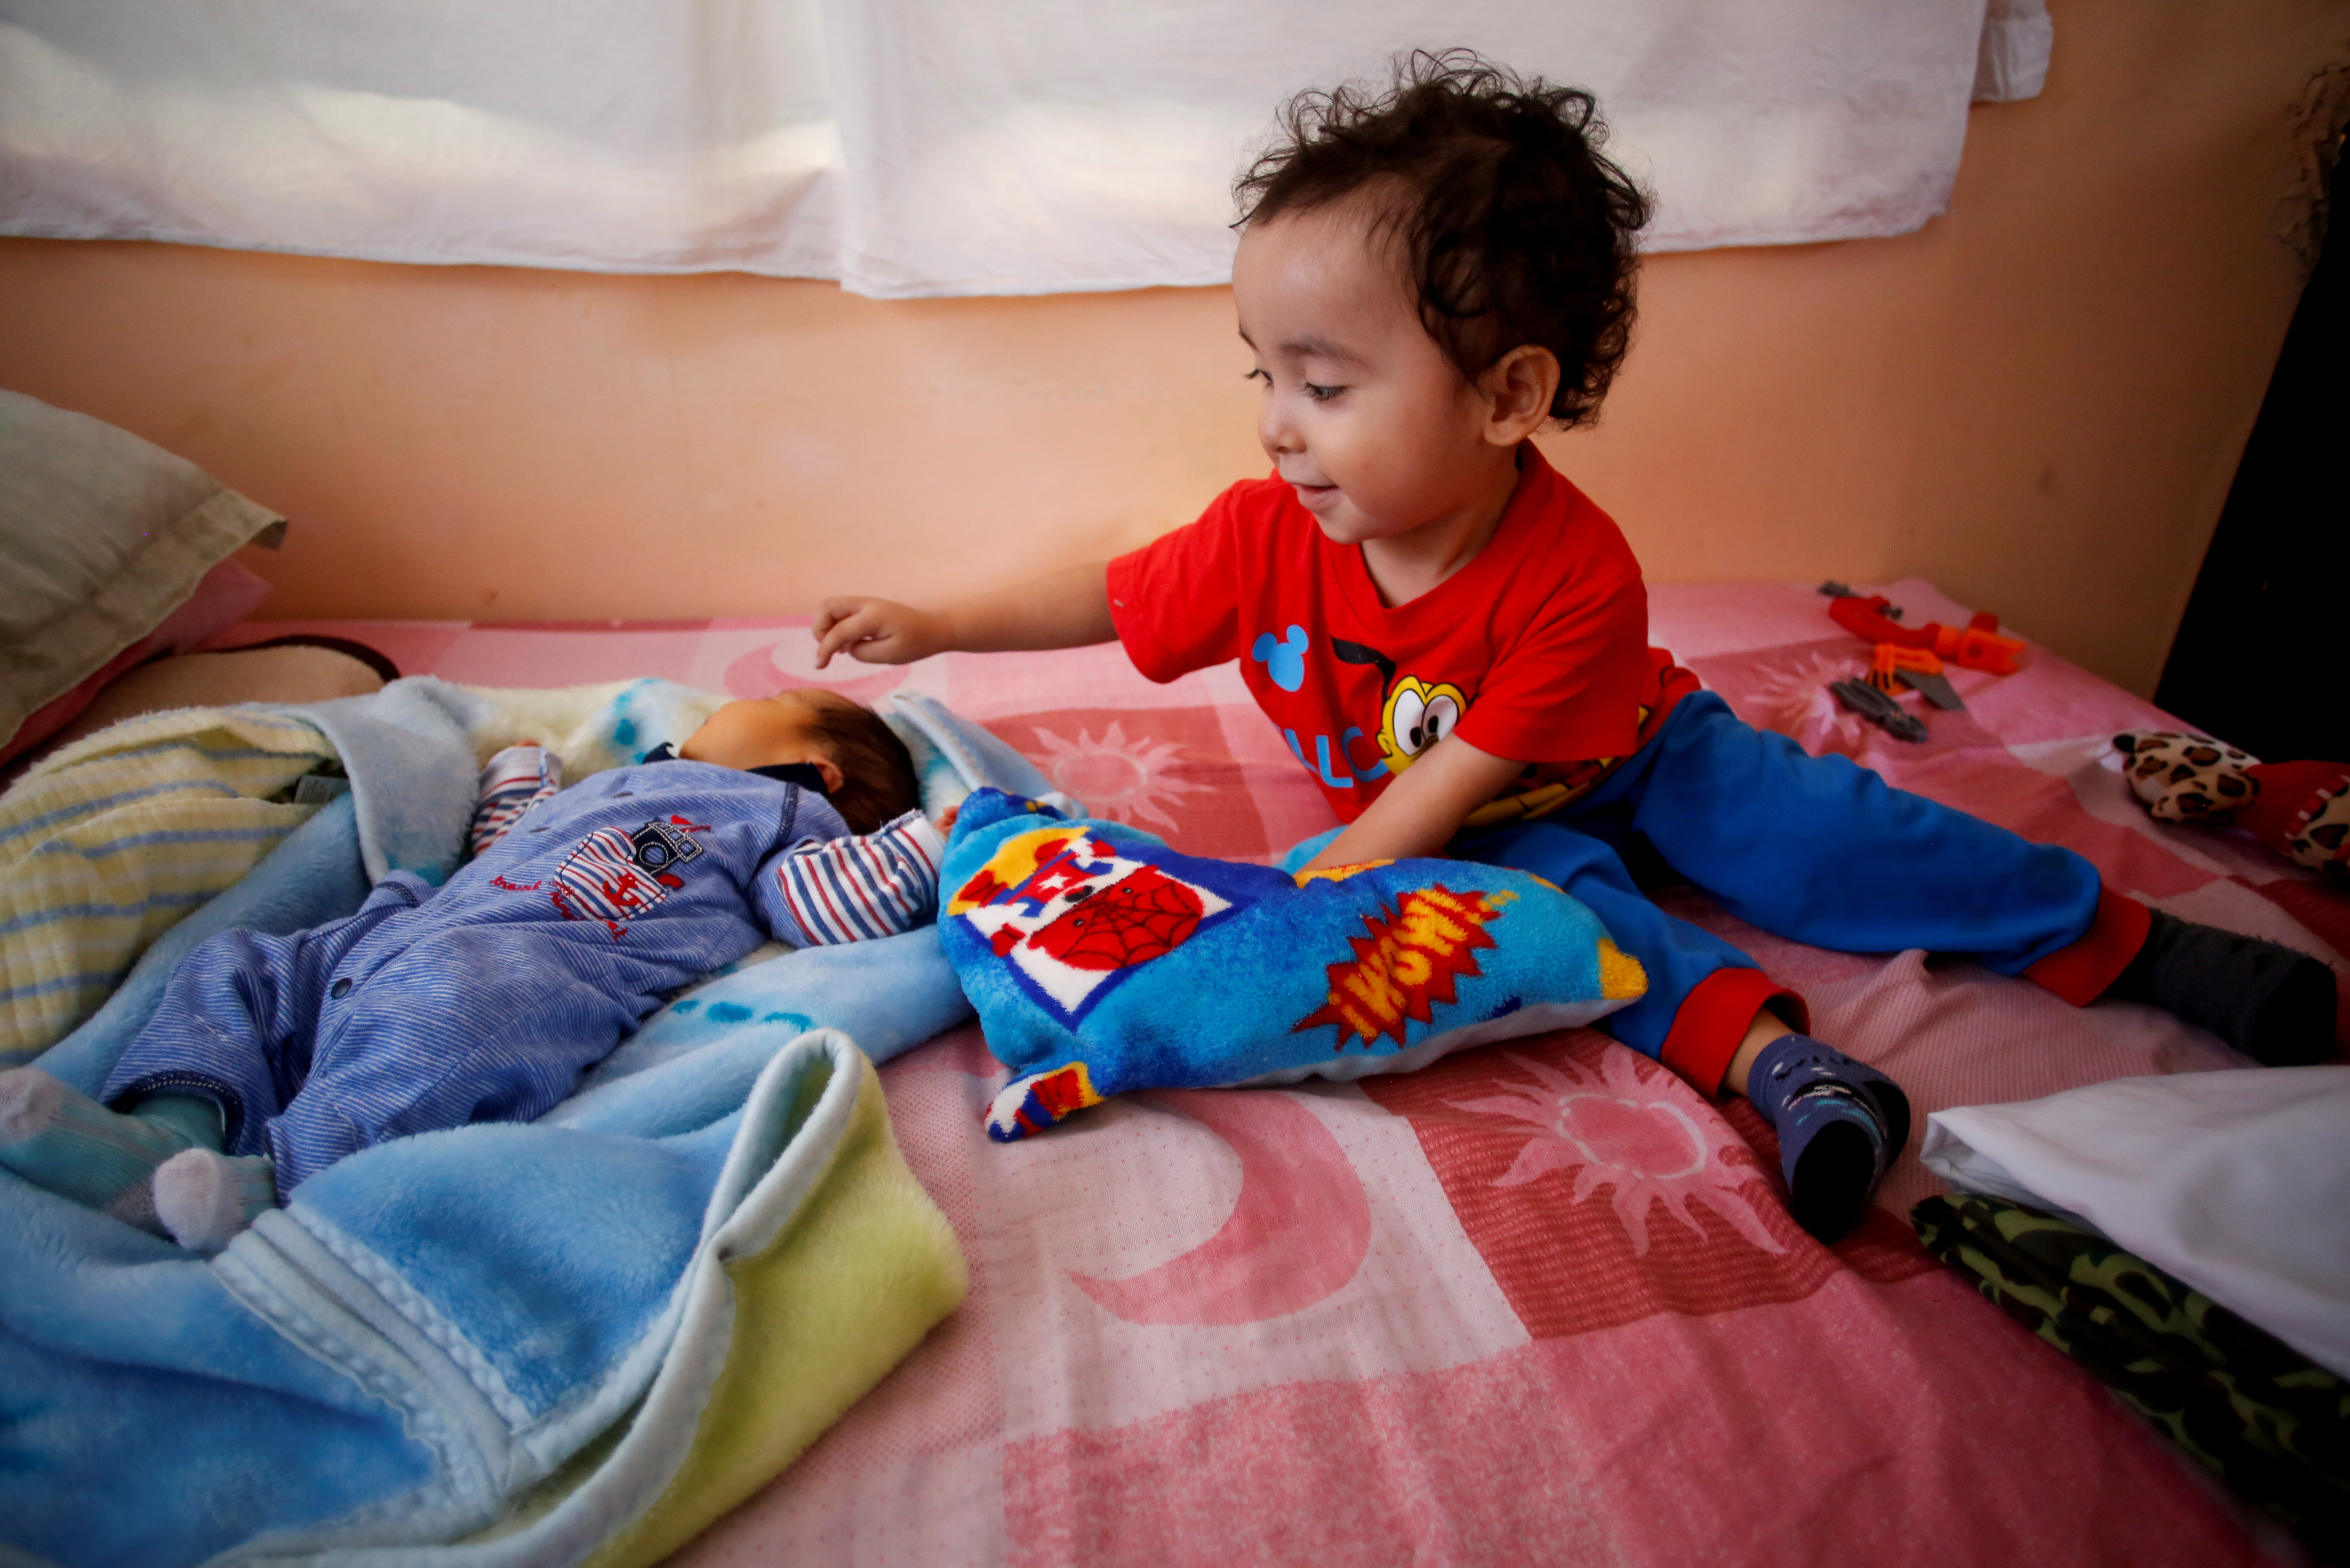 """Angel Flores Lopez, 3, points to his newborn baby brother Sabino Yoehi Flores Lopez as they sit on a bed at their grandparent's apartment, where they are staying with their parents after their mother Karla Lopez Rangel gave birth to Sabino at home during the coronavirus disease (COVID-19) outbreak, in Iztapalapa, Mexico City, Mexico, June 4, 2020. REUTERS/Gustavo Graf     SEARCH """"COVID-19 MEXICO BIRTH"""" FOR THIS STORY. SEARCH """"WIDER IMAGE"""" FOR ALL STORIES. - RC2ACH9NFQHS"""